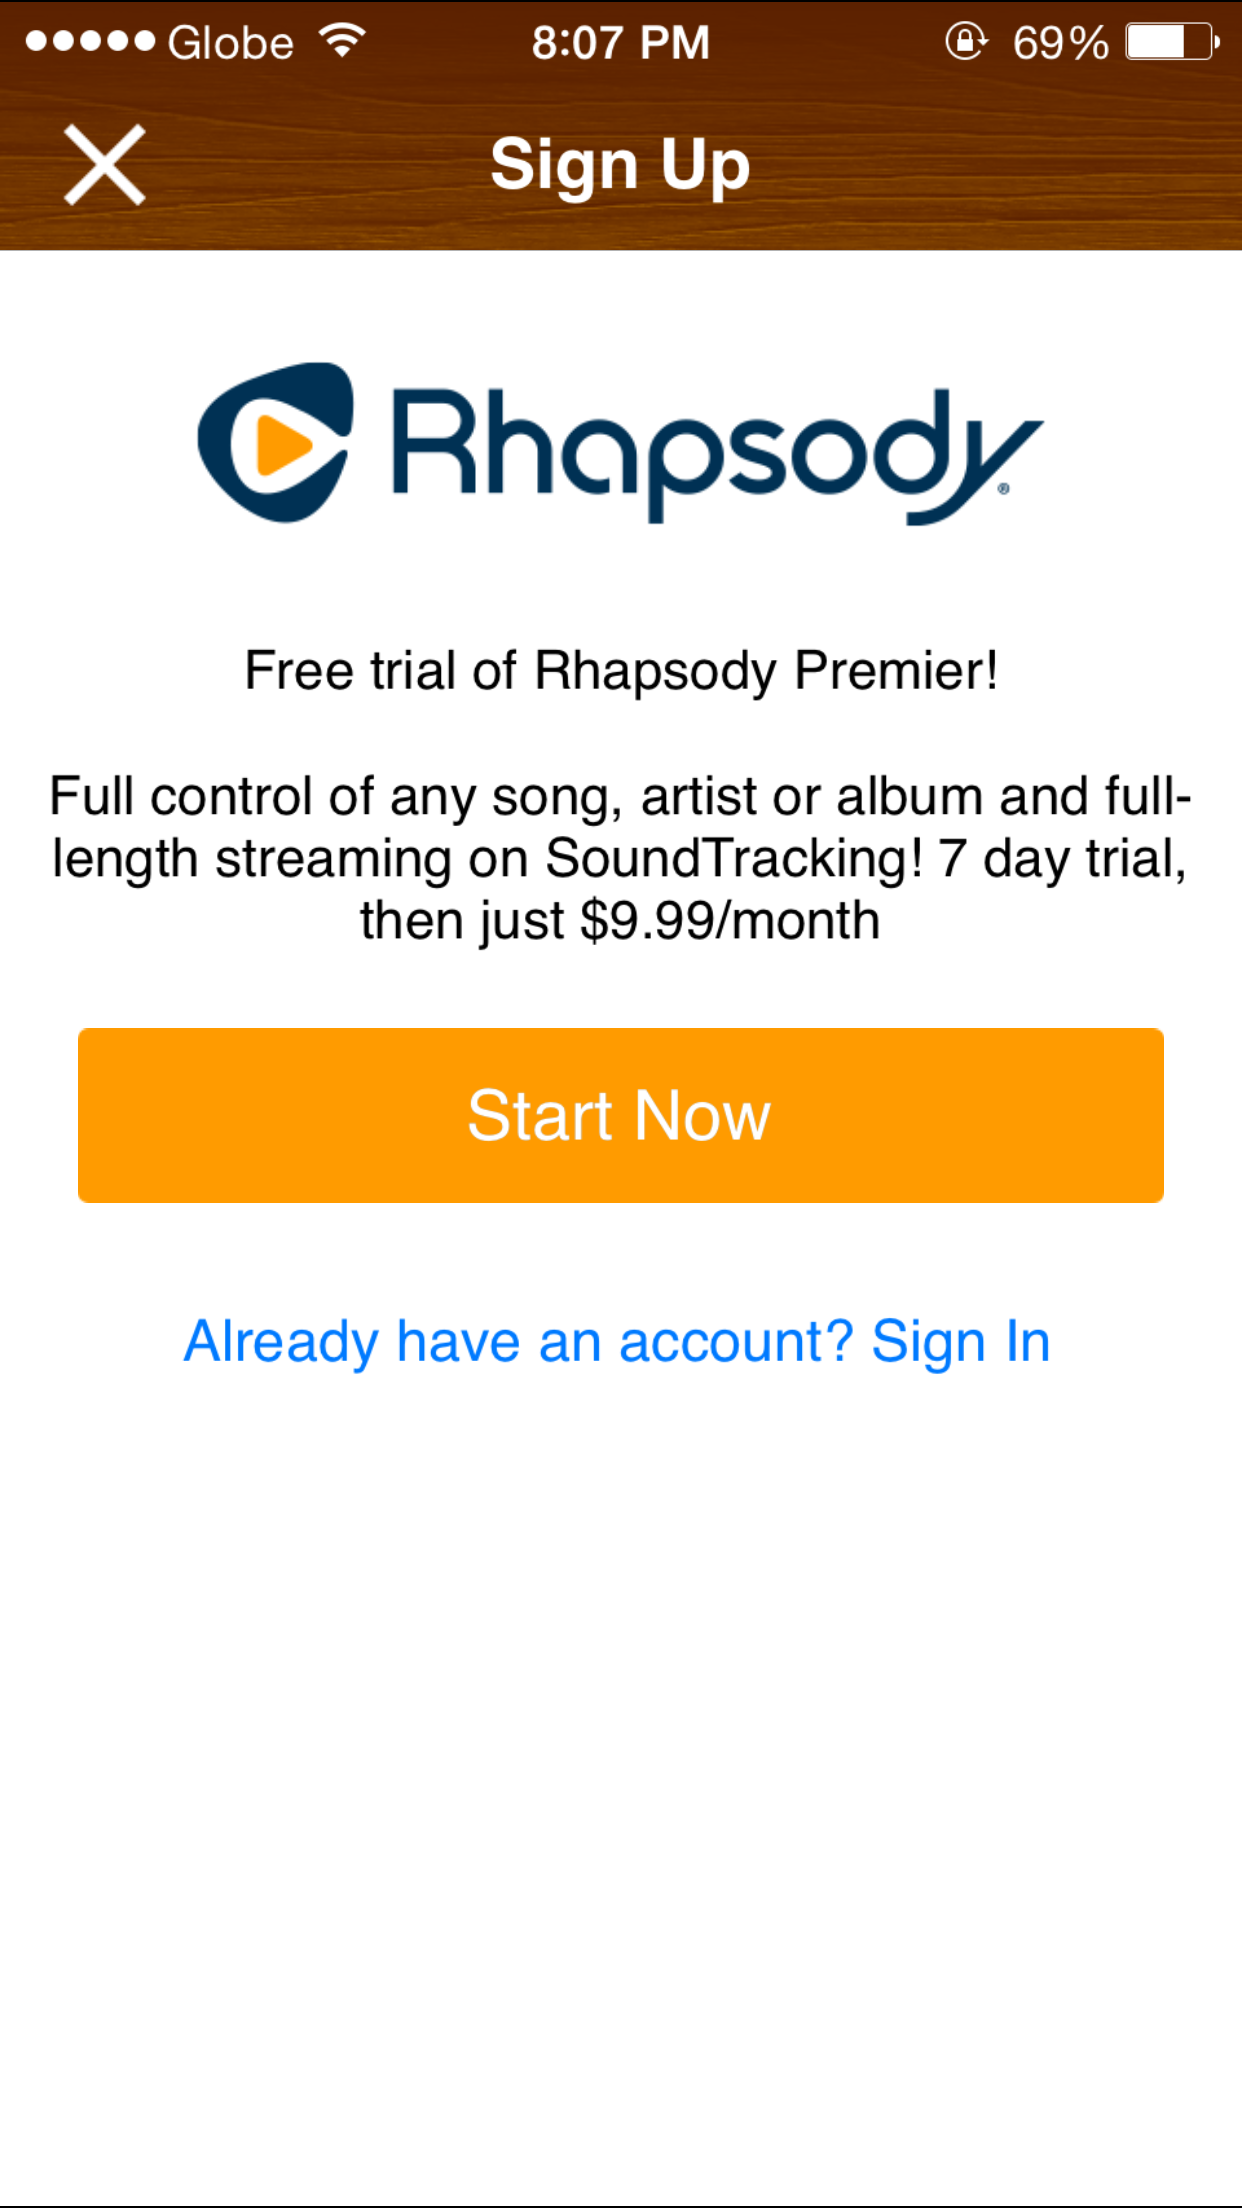 Sign up for Rhapsody right within SoundTracking.